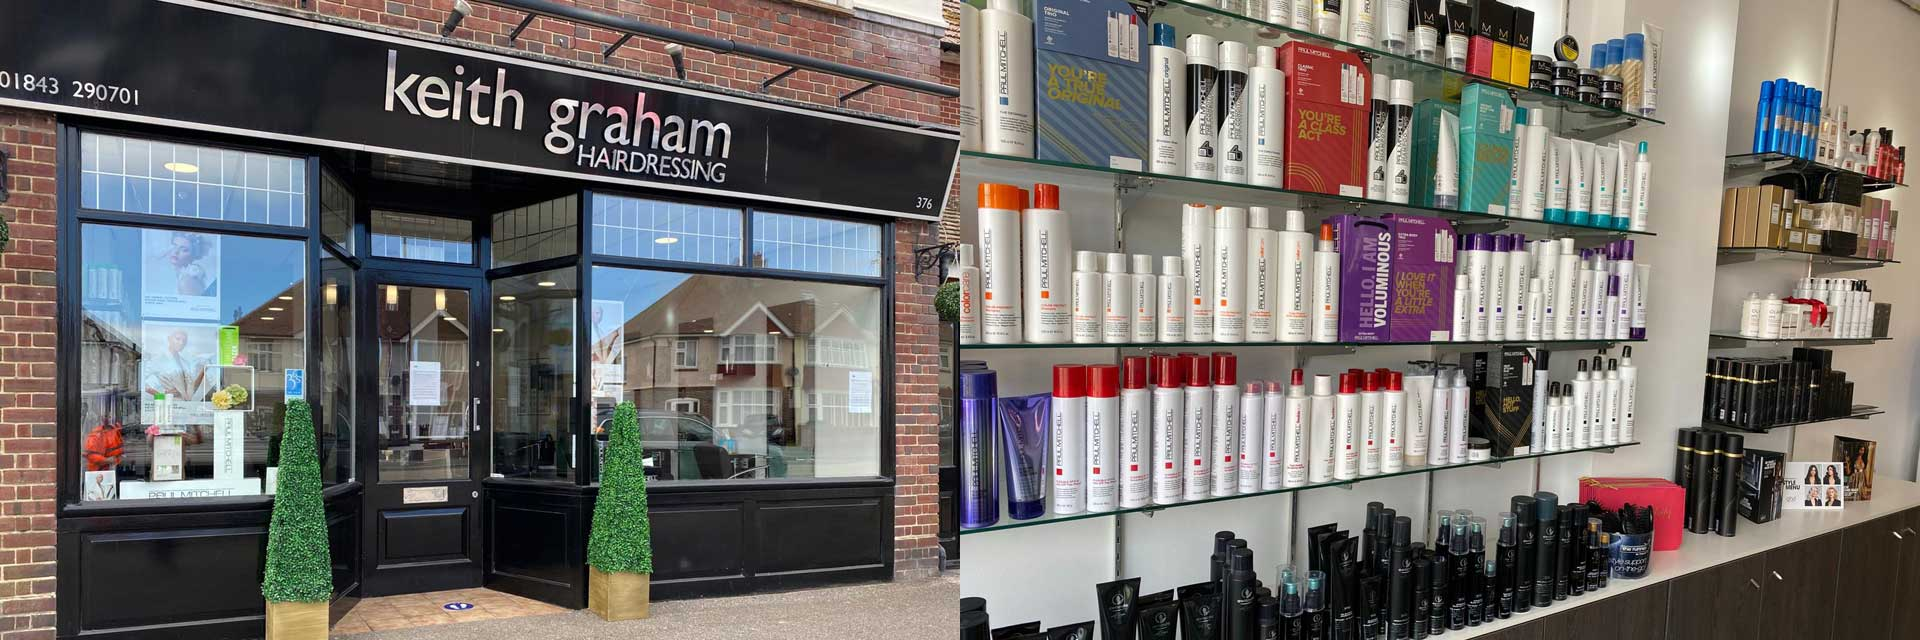 Images of the interior at Keith Graham Hairdressing